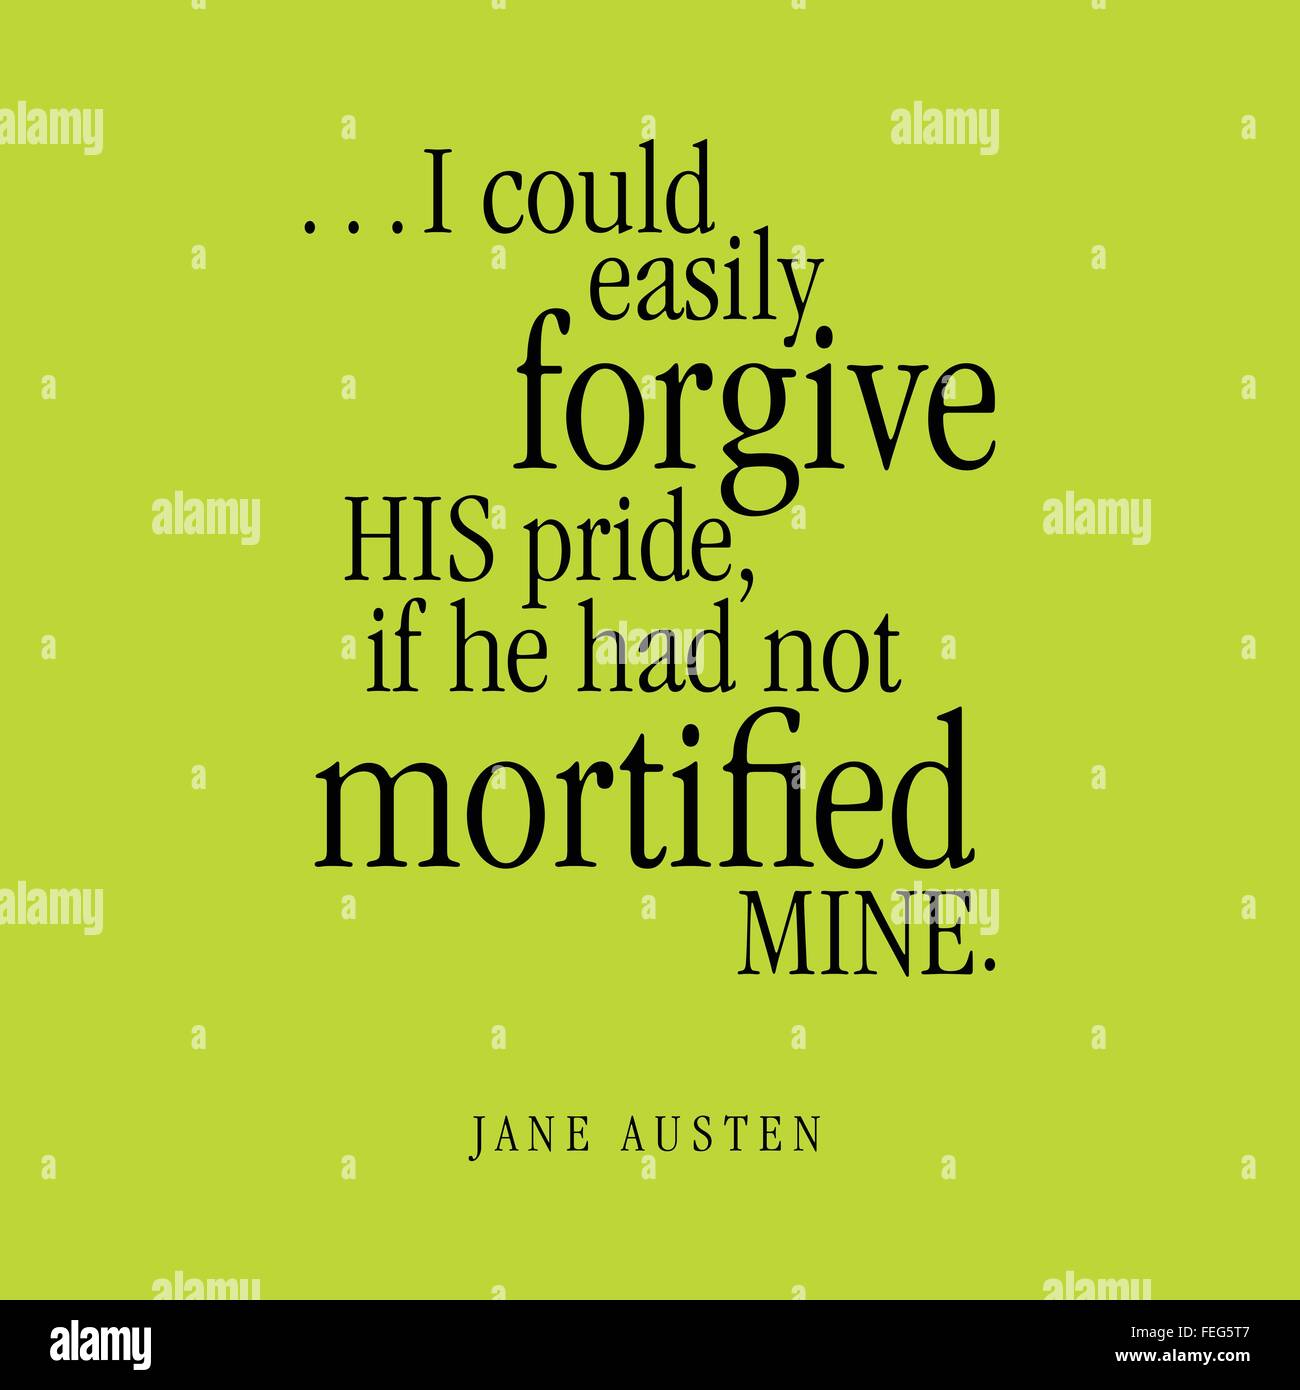 '...I could easily forgive HIS pride, if he had no mortified MINE.' Jane Austen - Stock Vector